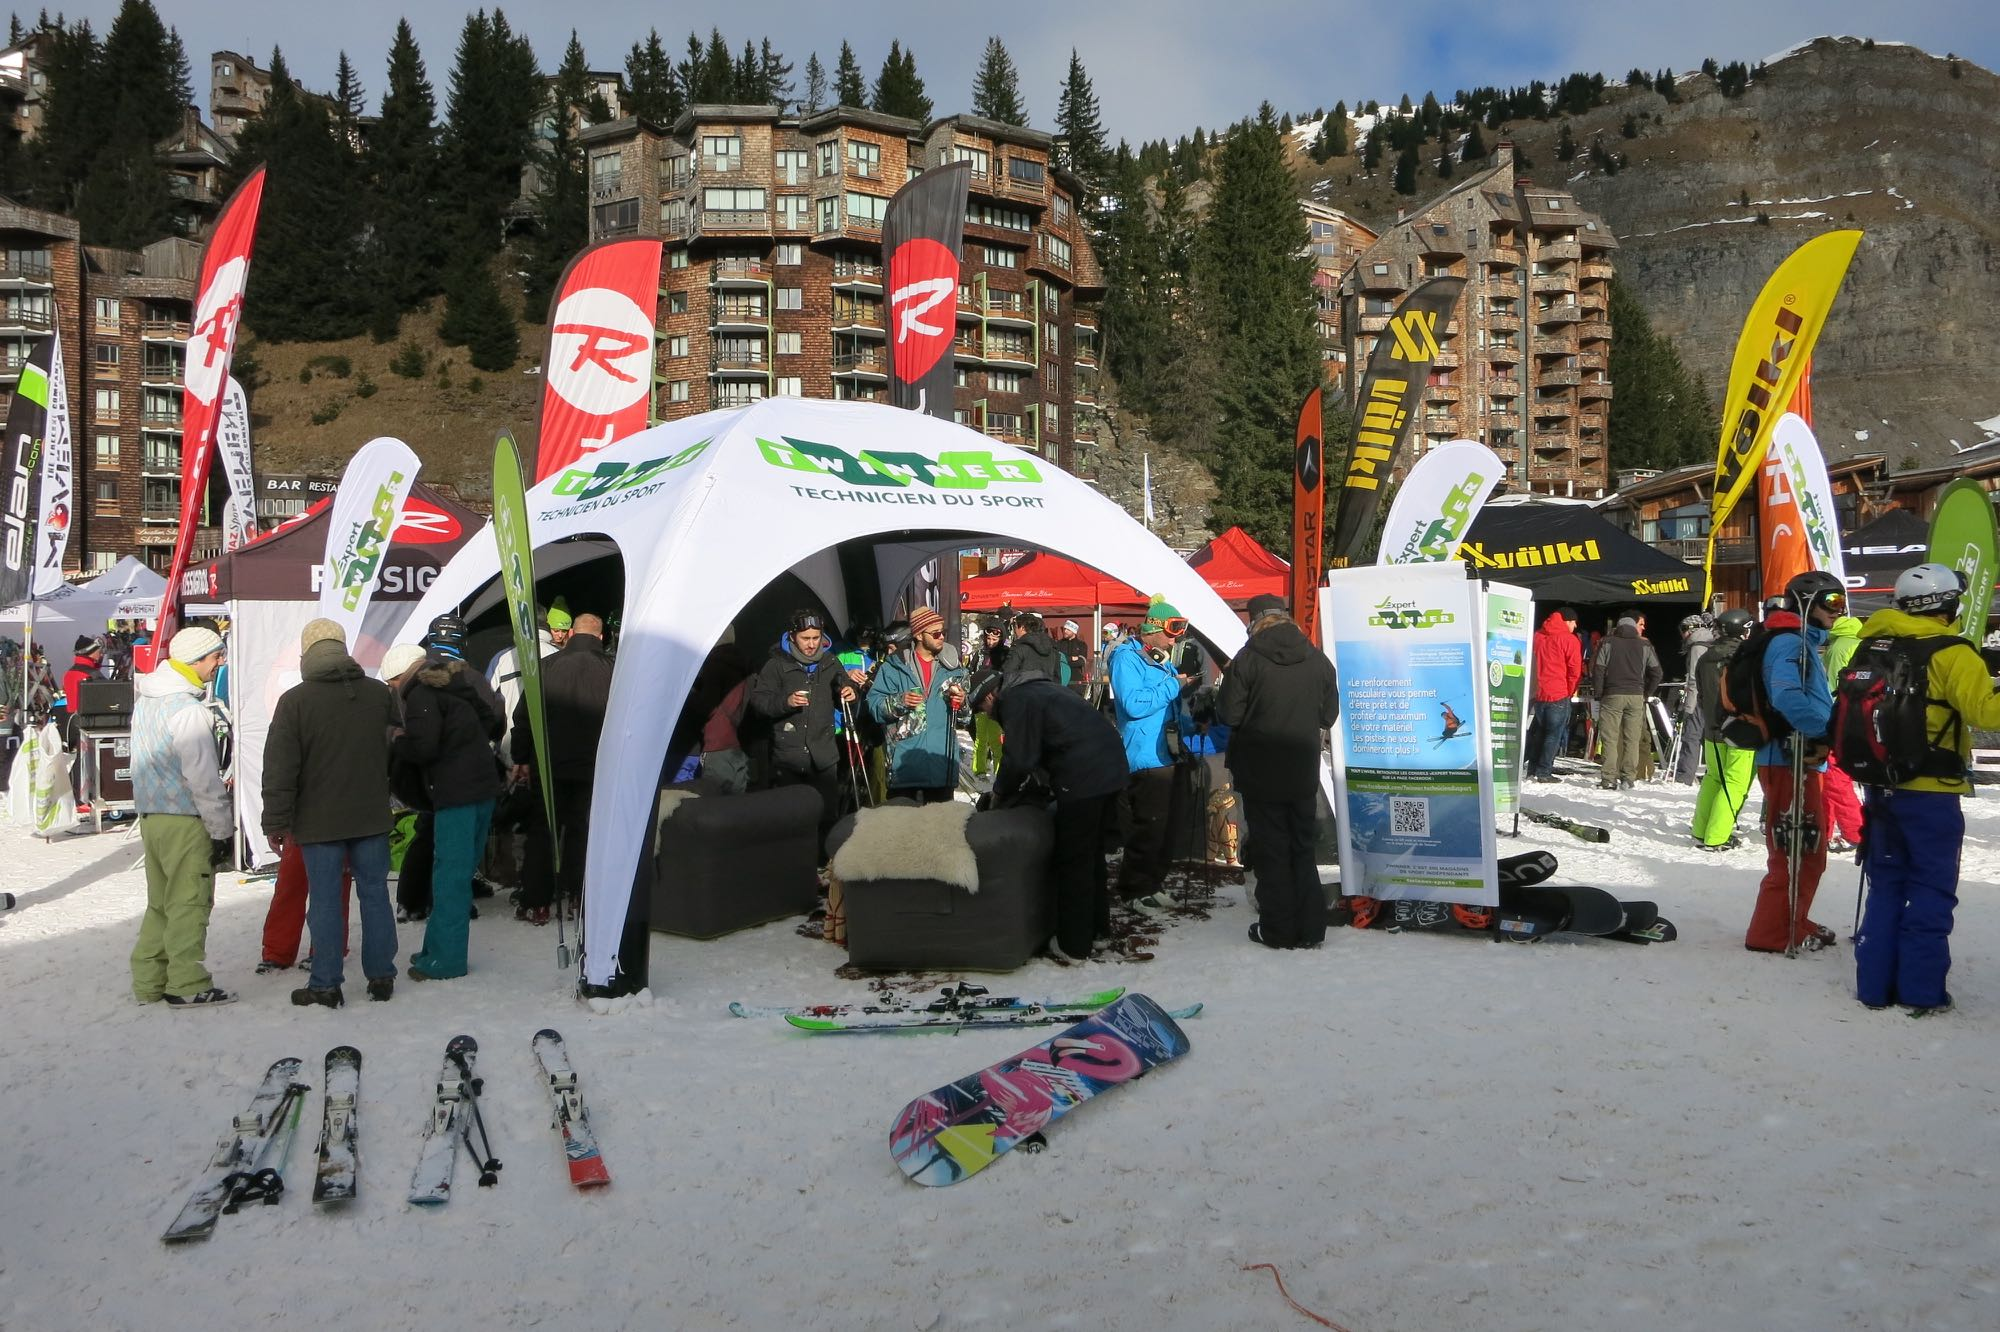 Launching Go Sports Winter Events